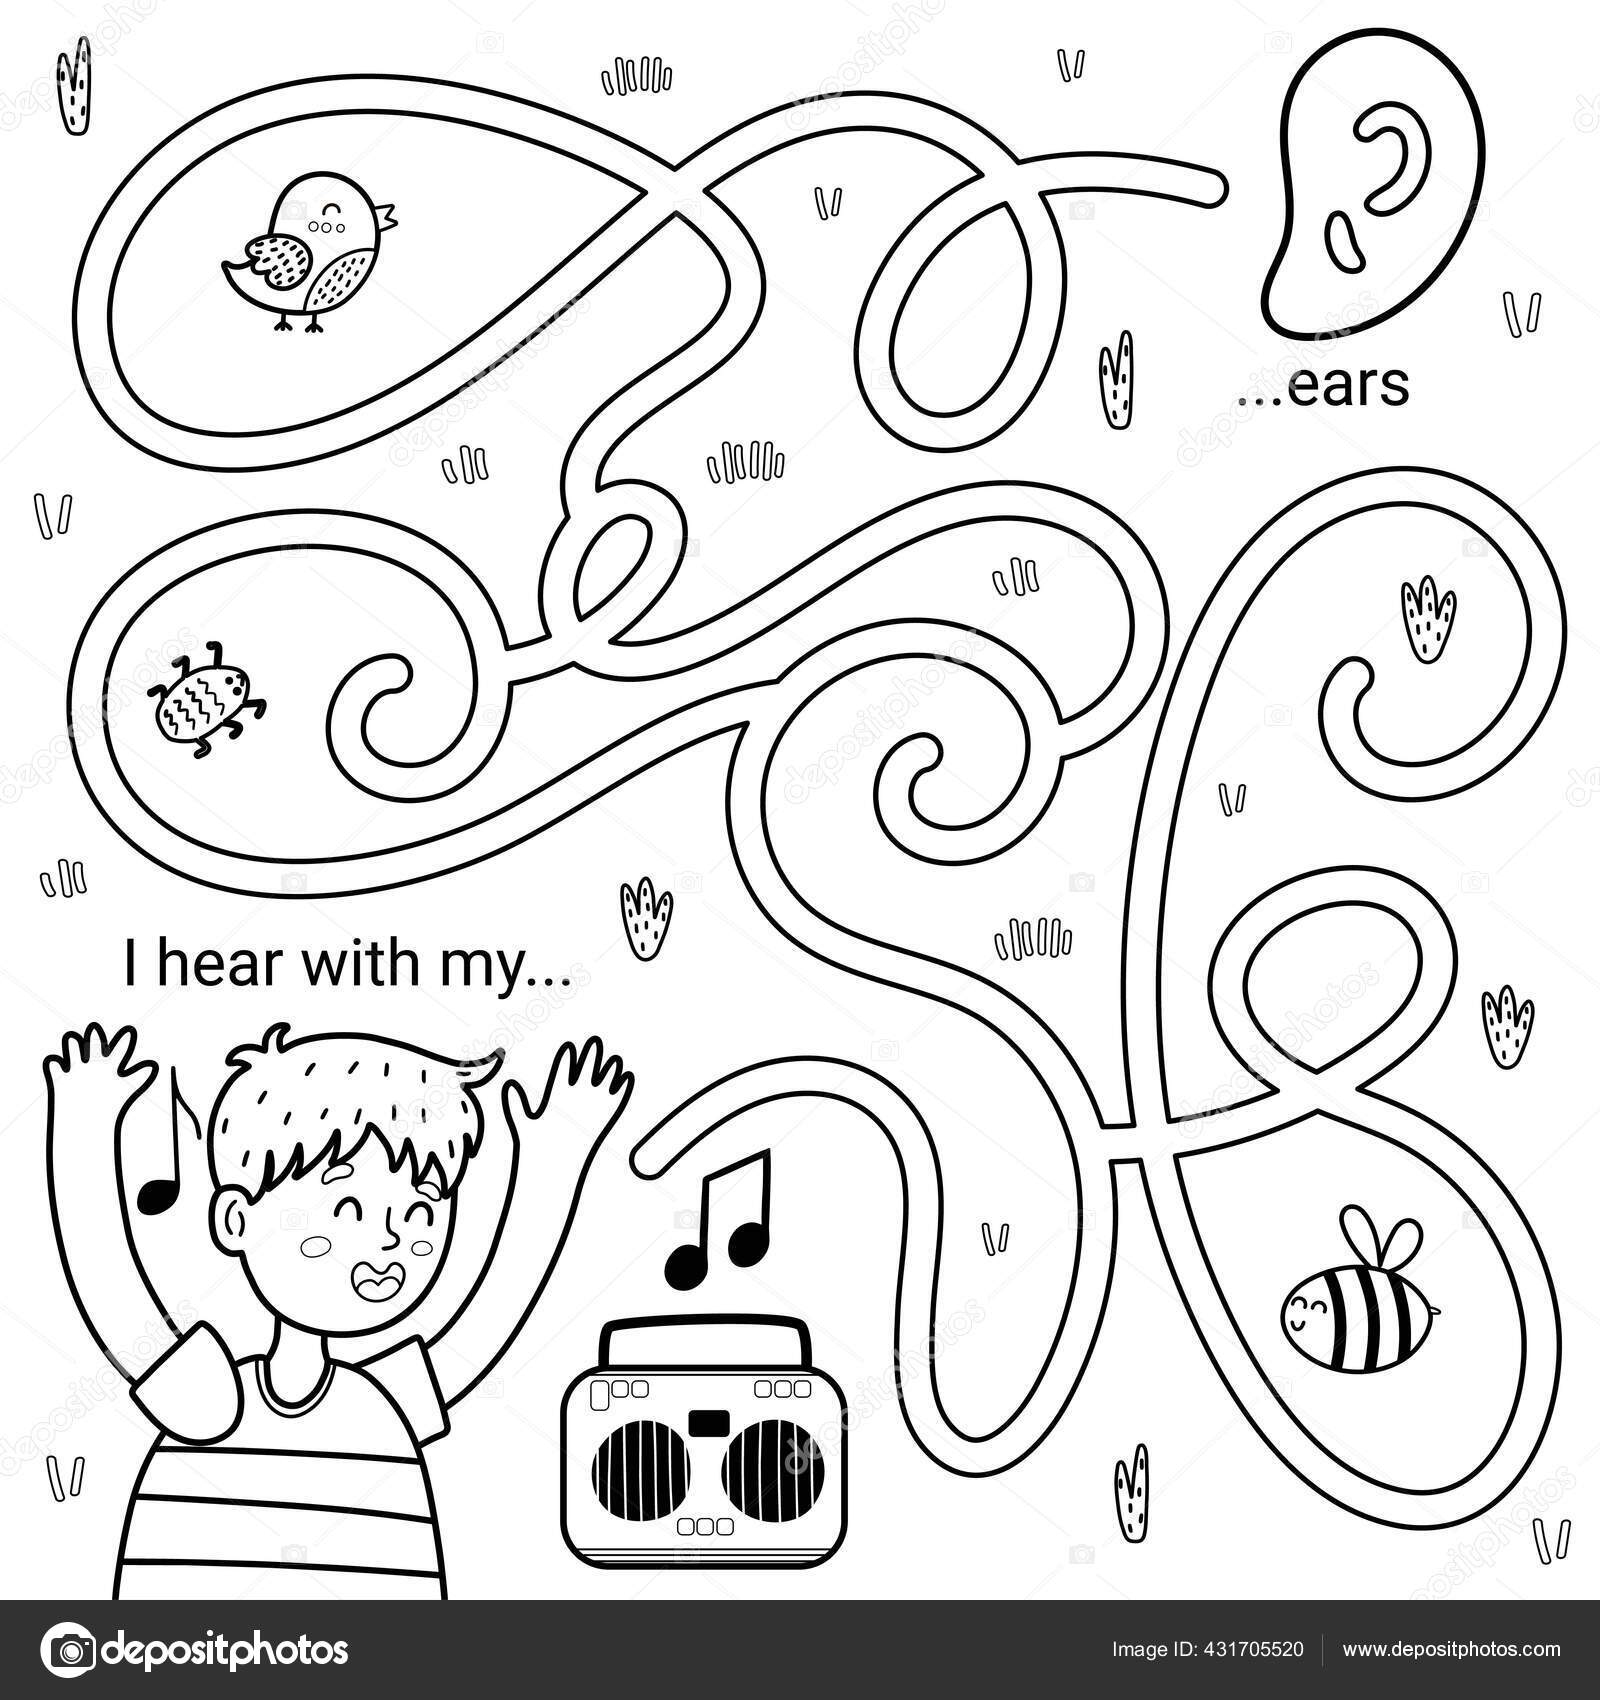 I Can Hear With My Ears Black And White Maze Game For Kids Five Senses Labyrinth Vector Image By C Juliyas Vector Stock 431705520